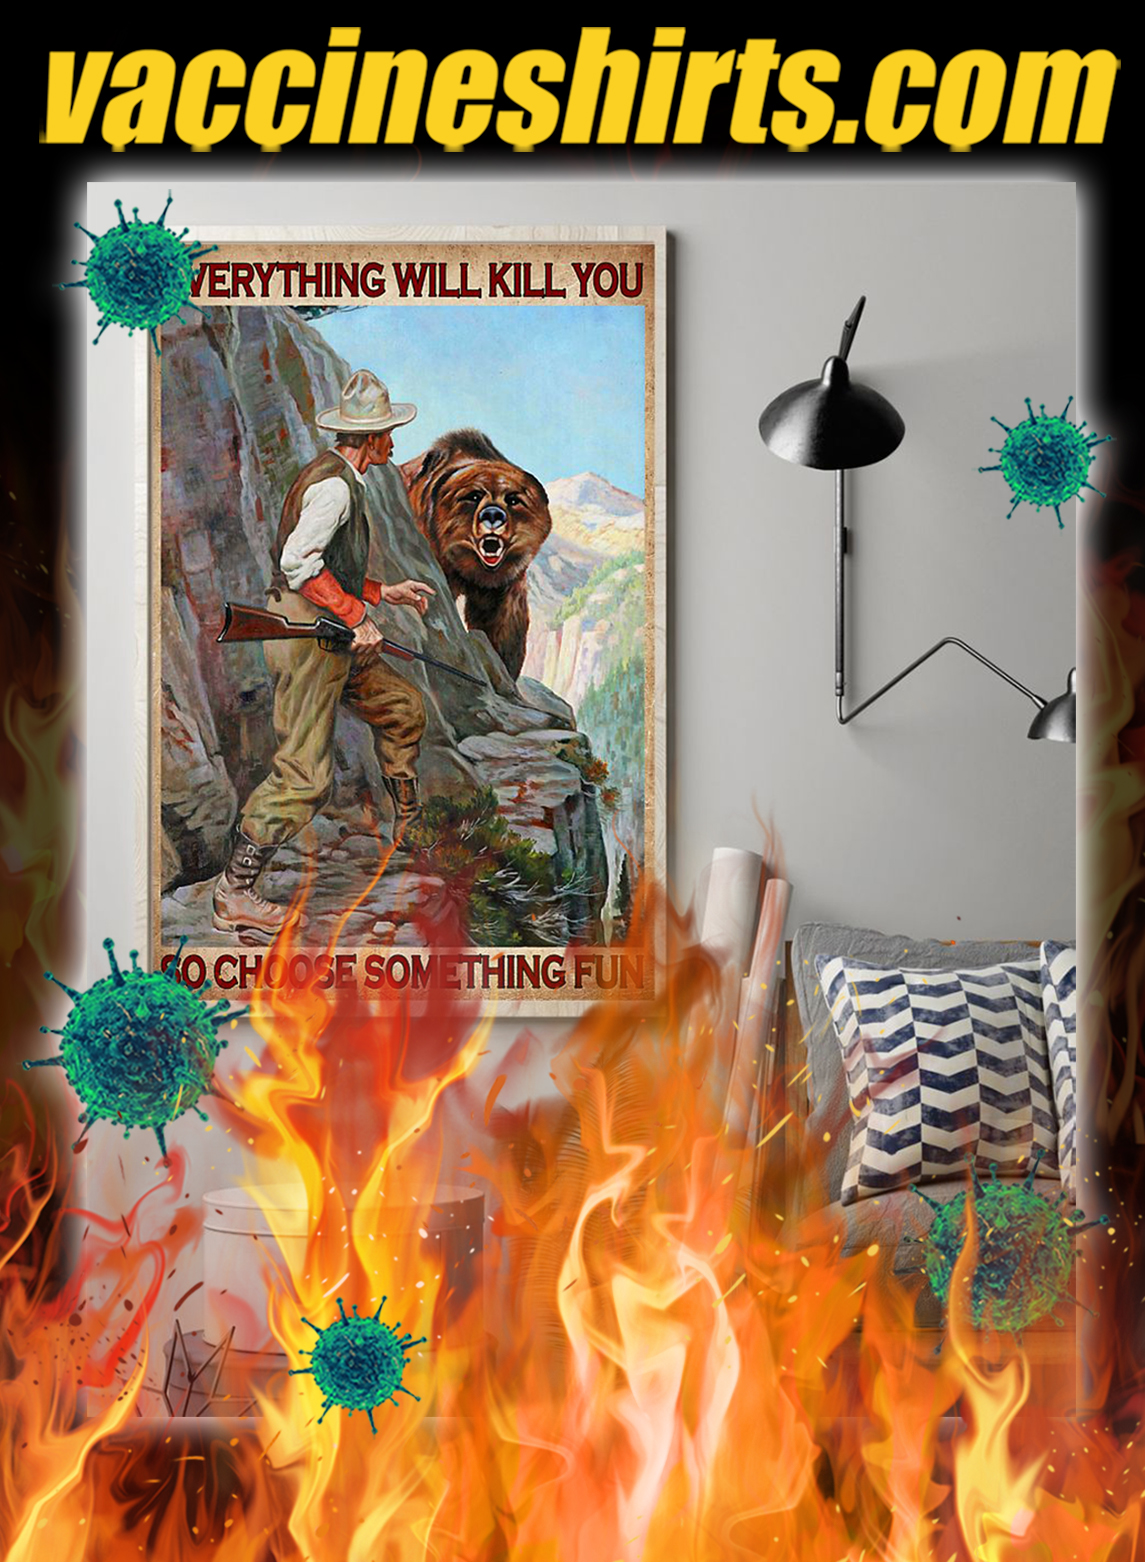 Hunter and bear everything will kill you so choose something fun poster- A1